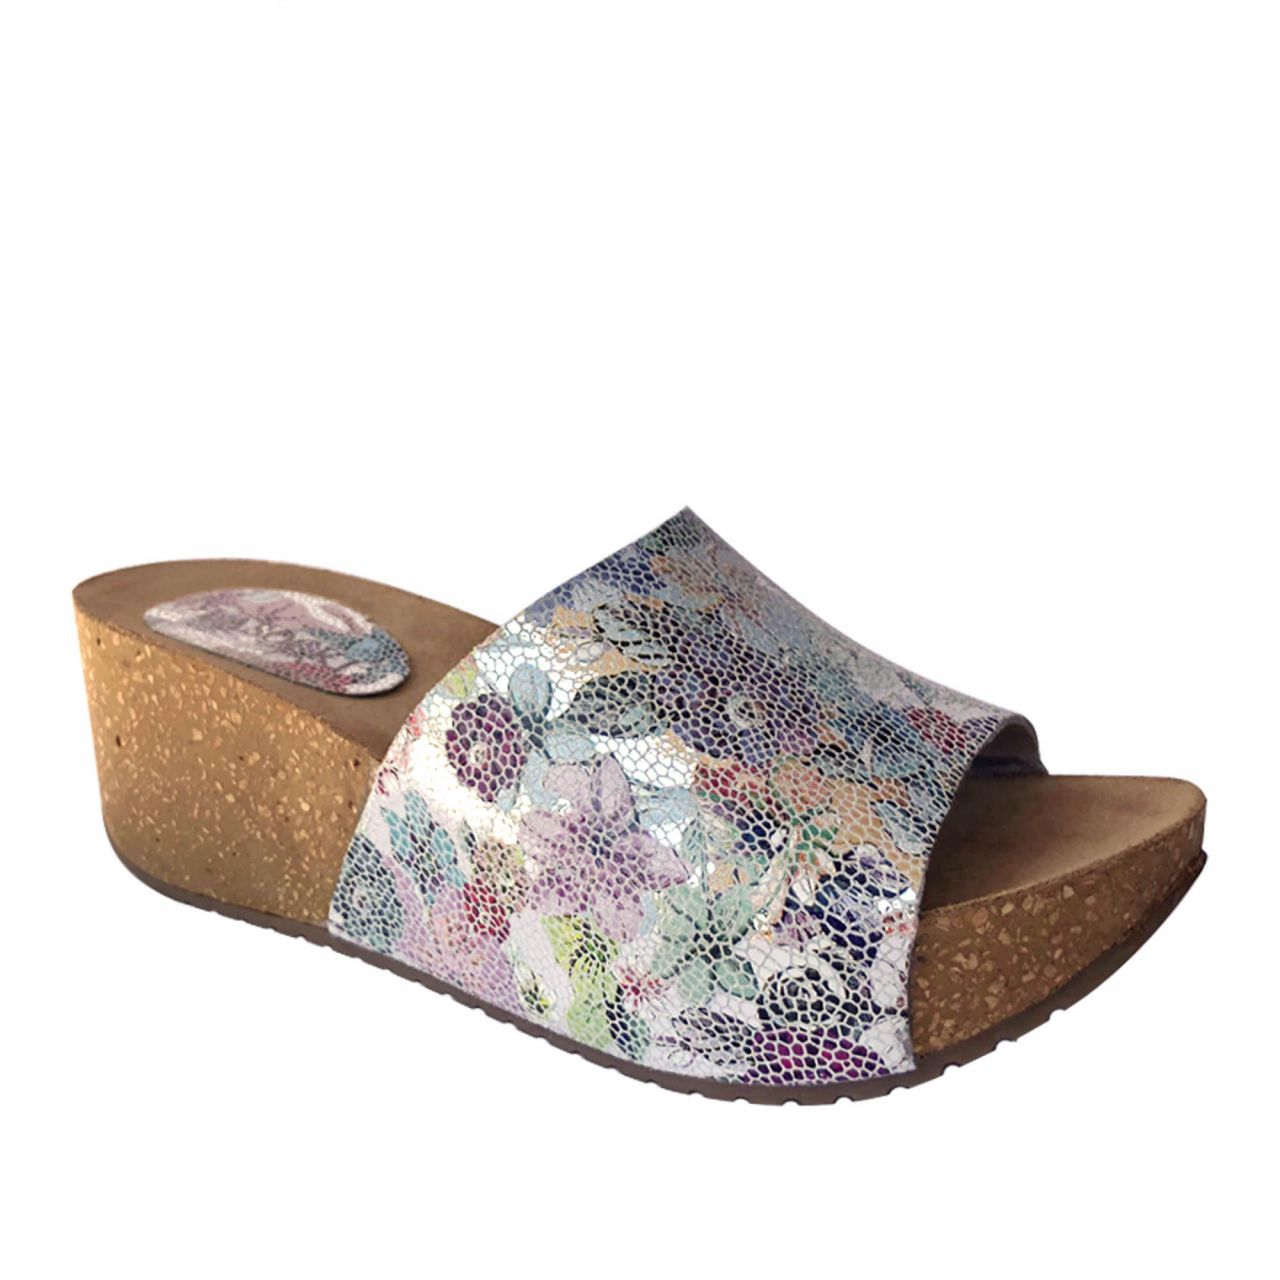 Genuine leather women slippers